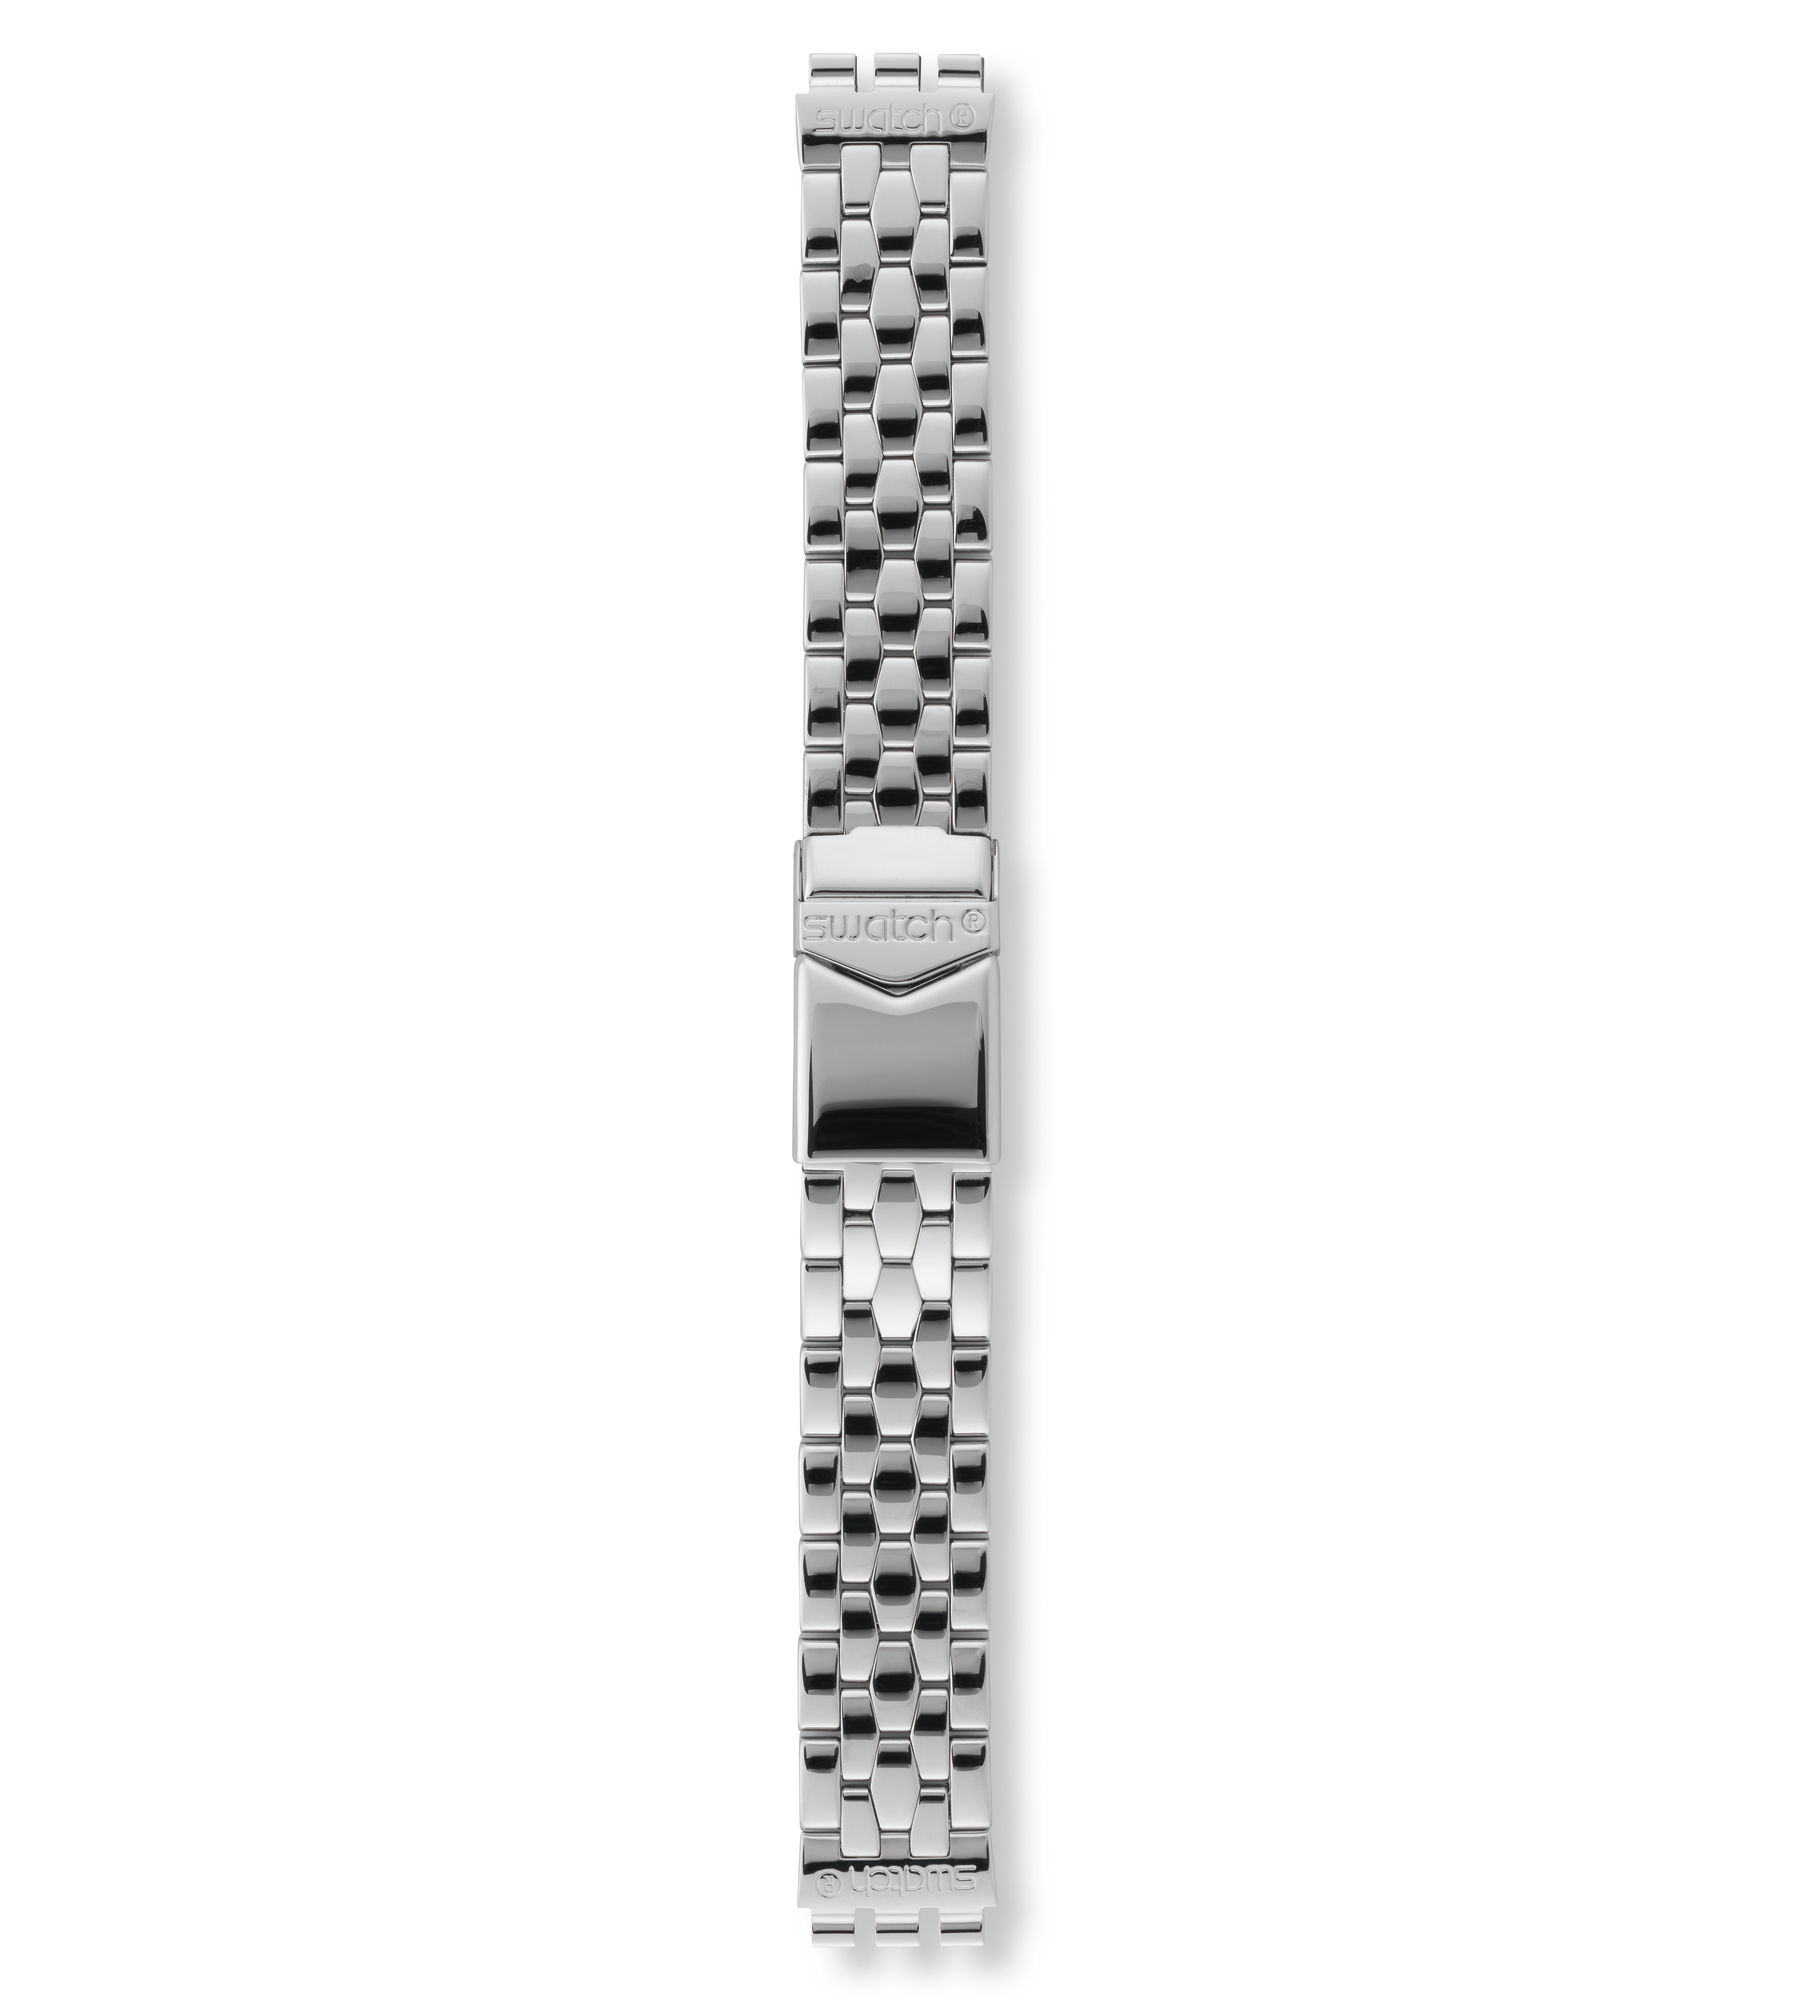 Swatch® United States - Irony Medium BODY & SOUL / ST STEEL